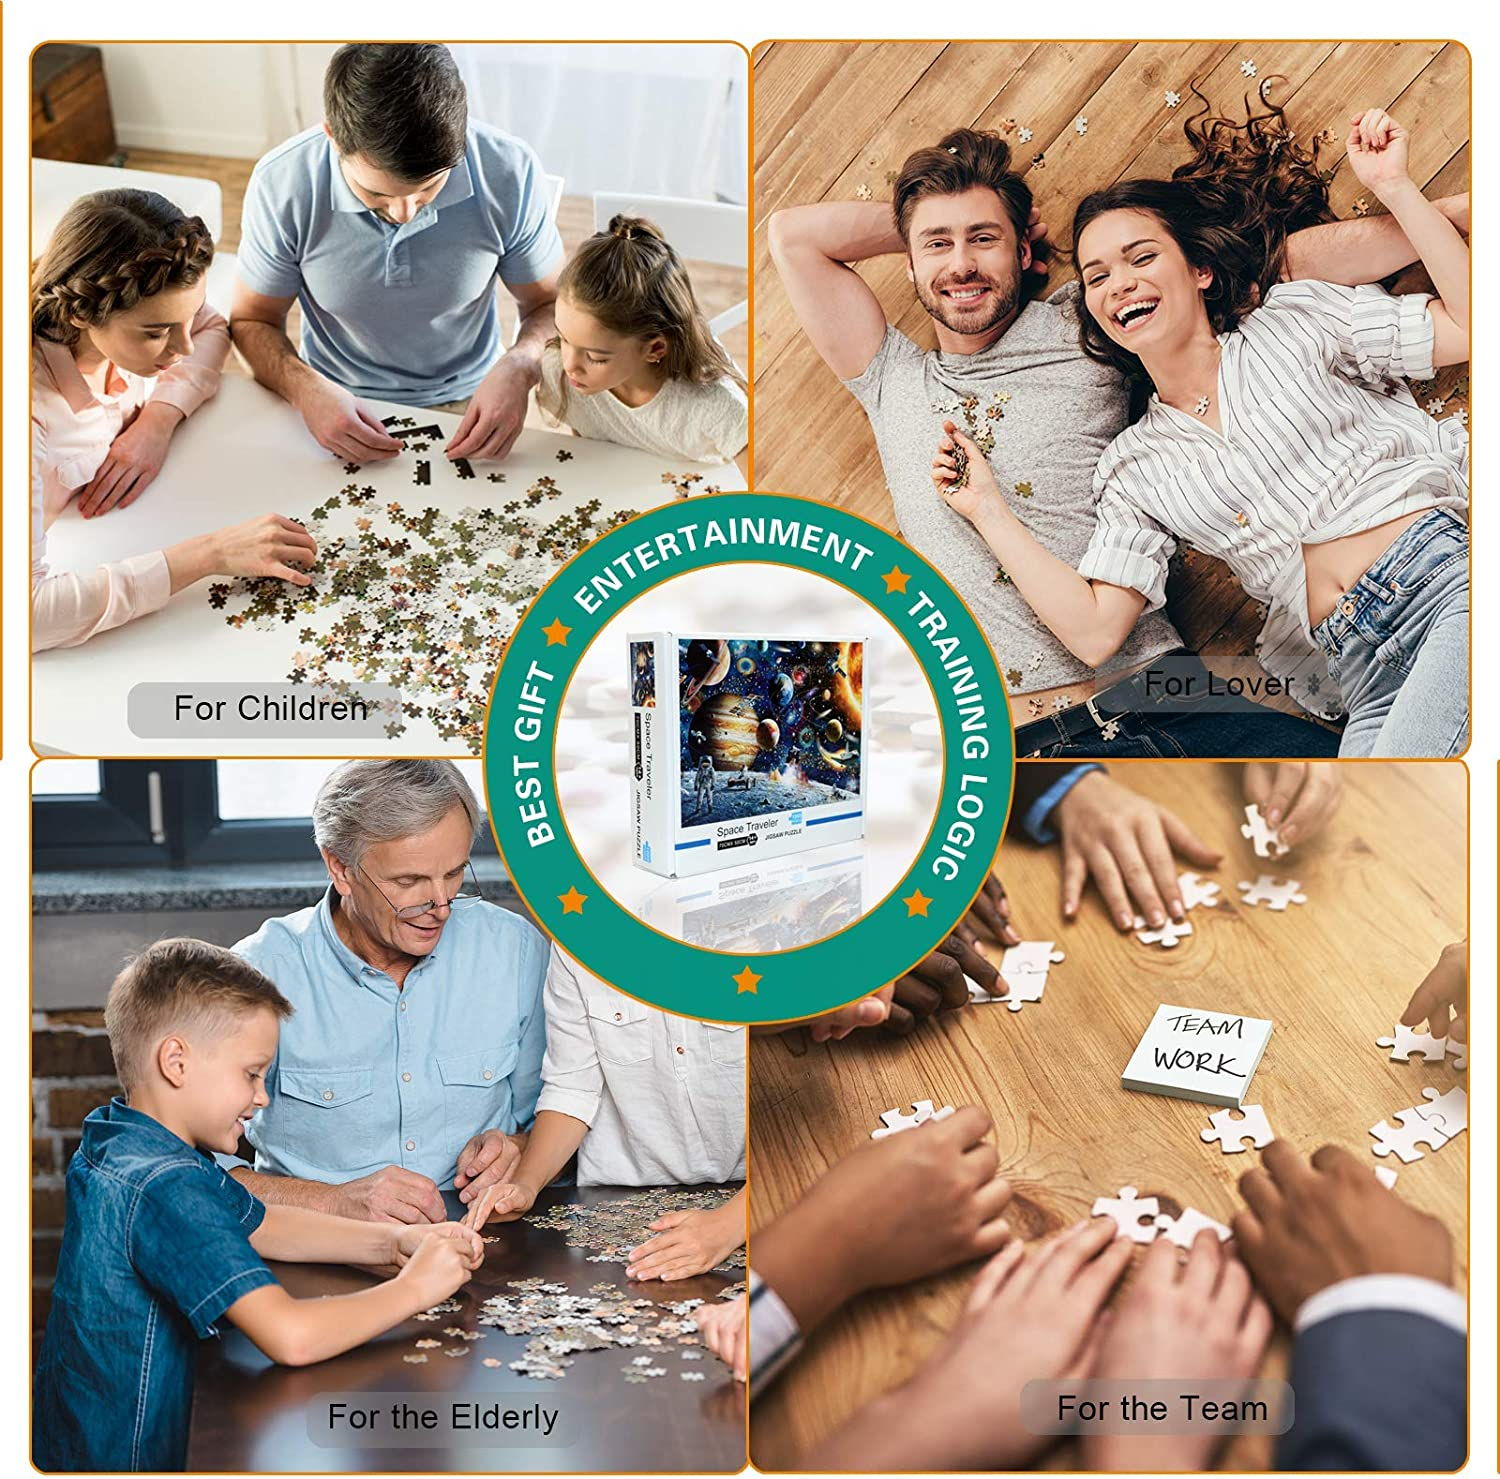 Jigsaw Puzzles 1000 Pieces for Adults-Difficult Puzzles for Adults-Dowdle Puzzles for Adults/&Kids 1000 Piece(Lover Rainy Night Walk